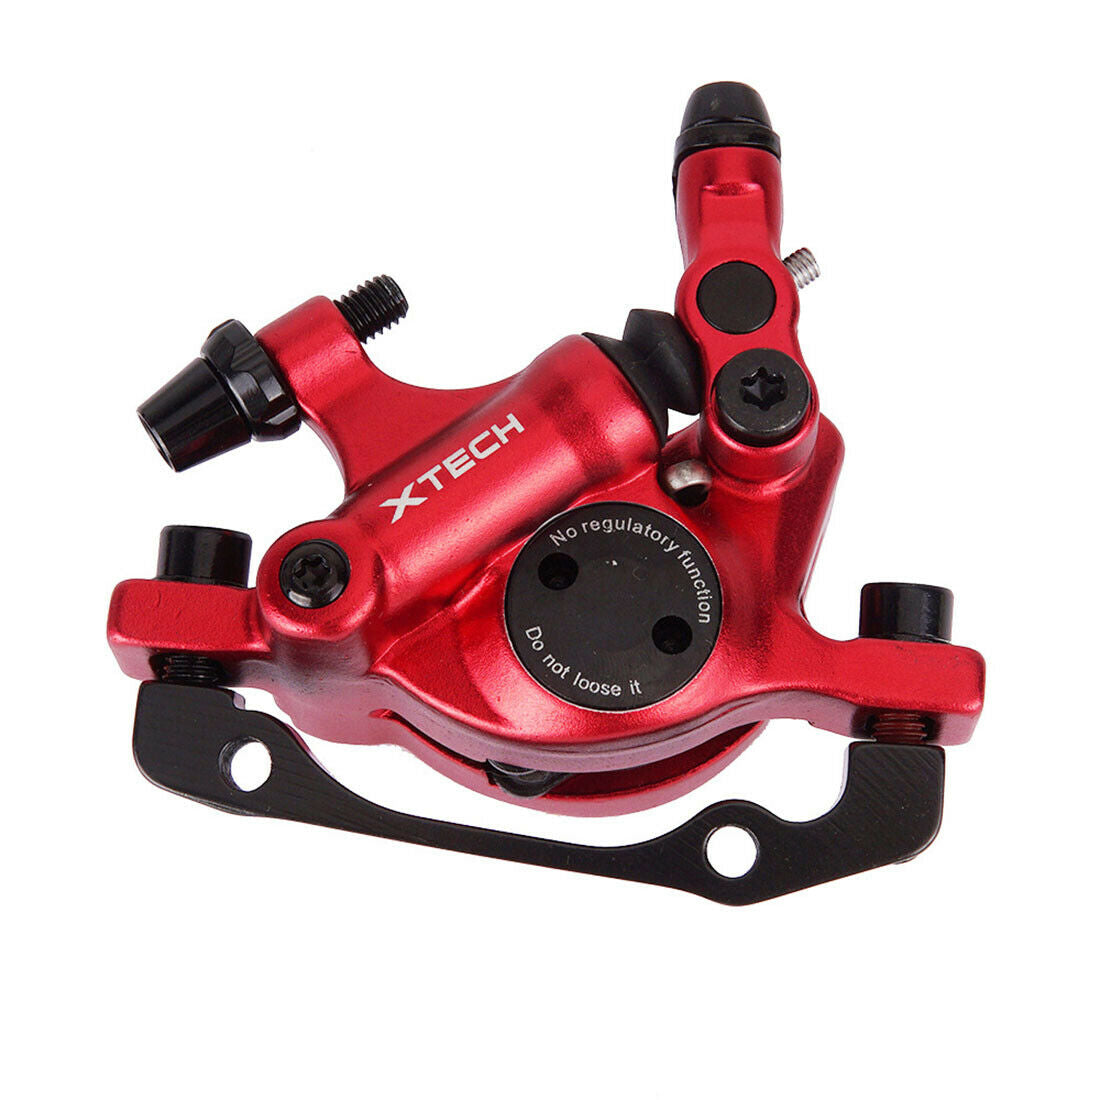 XTECH Zoom HB100 Brake Calliper-Electric Scooters London